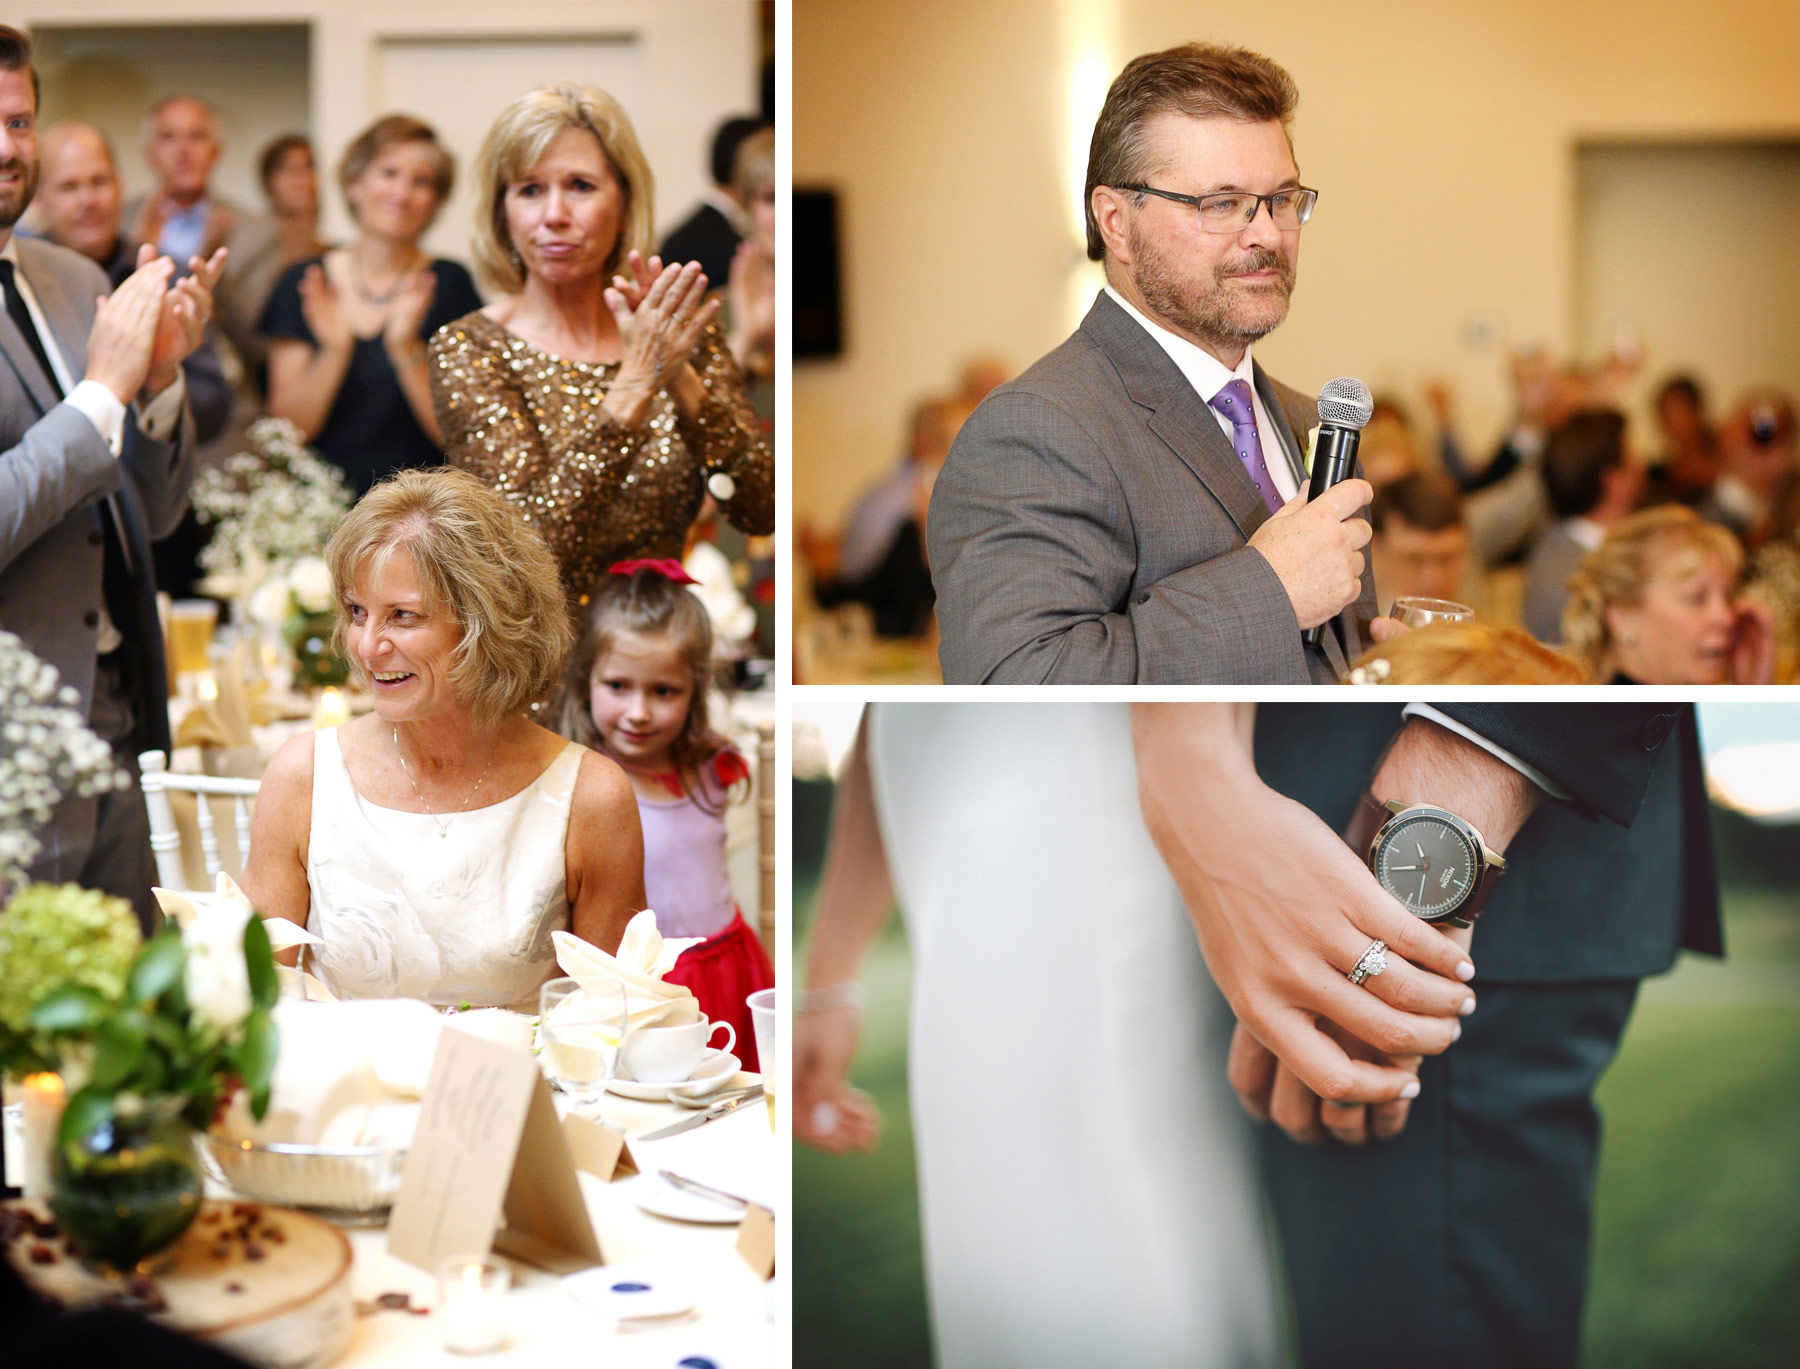 22-Dellwood-Minnesota-Wedding-Photographer-by-Andrew-Vick-Photography-Summer-Country-Club-Reception-Bride-Groom-Father-Parents-Speeches-Rings-Watch-Sarah-and-Landon.jpg